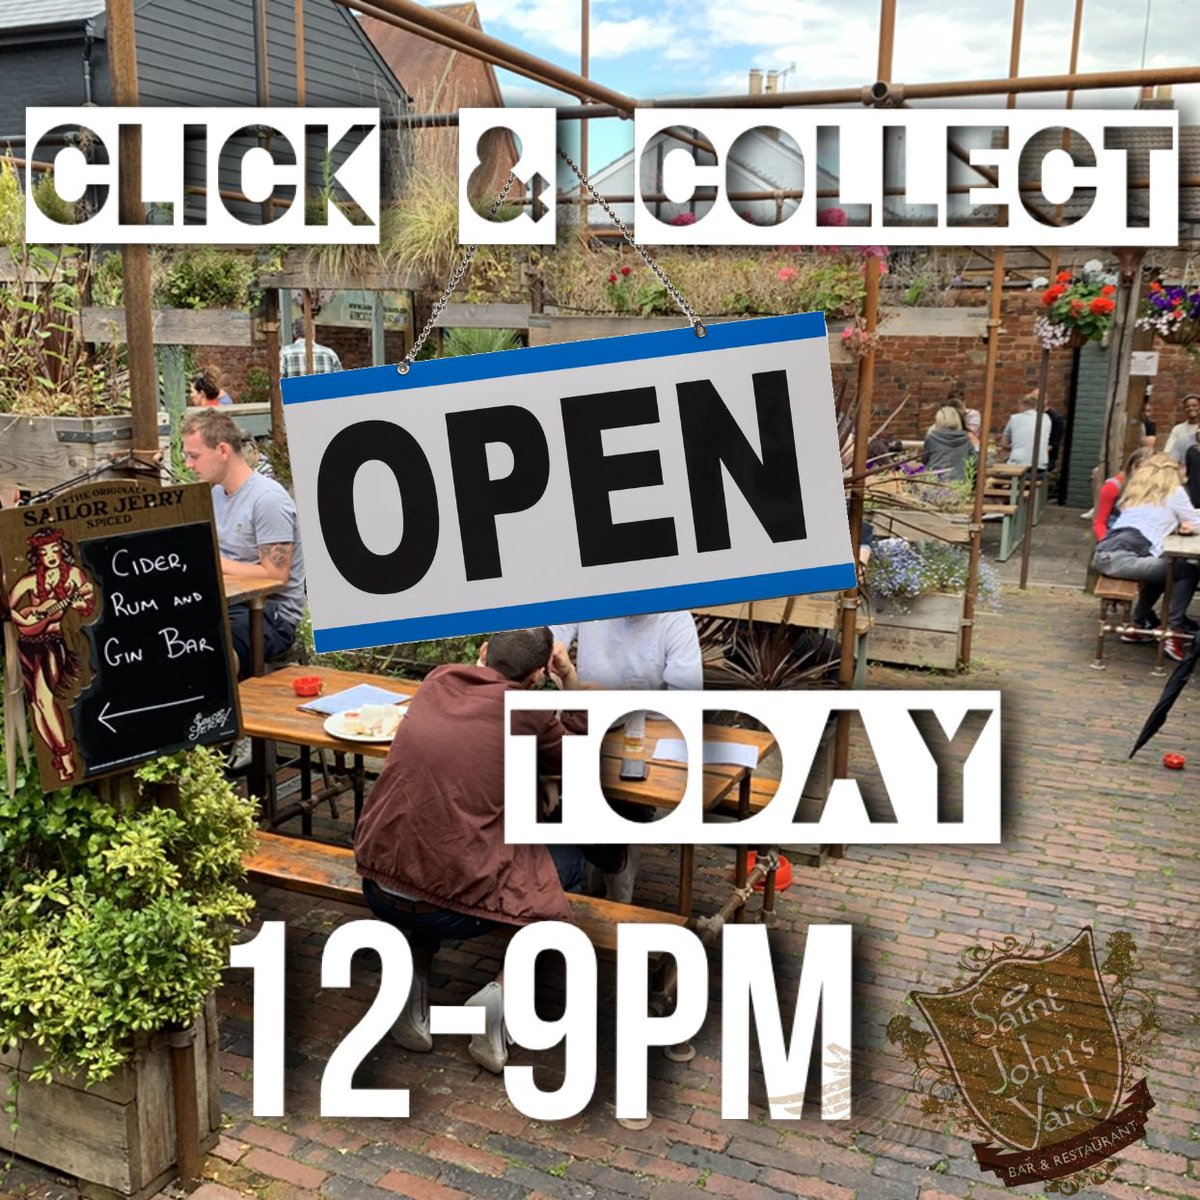 CLICK & COLLECT open today 12-9pm! Also on @deliveroo 👌 We are busy preparing for our opening day tomorrow but can't wait to start welcoming you all back 🤗 • #supportlocal #tunbridgewells #burgers #saintjohnsyard #takeaway #clickandcollect #food #deliveroo #foodie #pub #kent